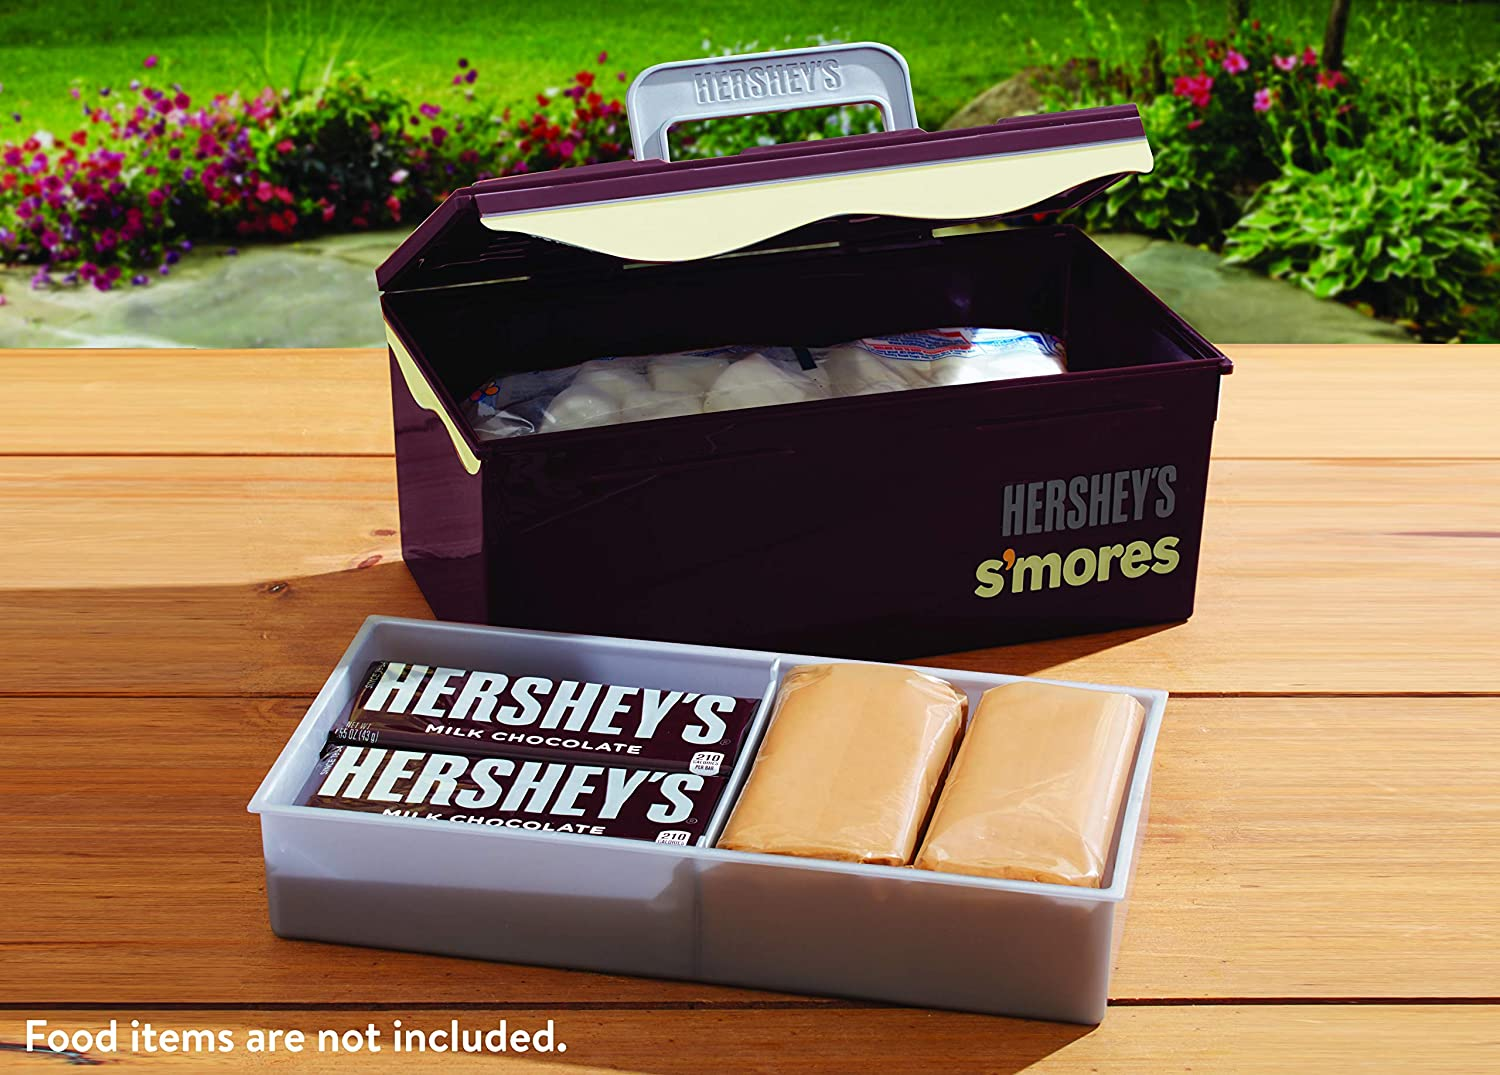 HERSHEY/'S Smores, Tacklebox Carry Case Storage Caddy Camping